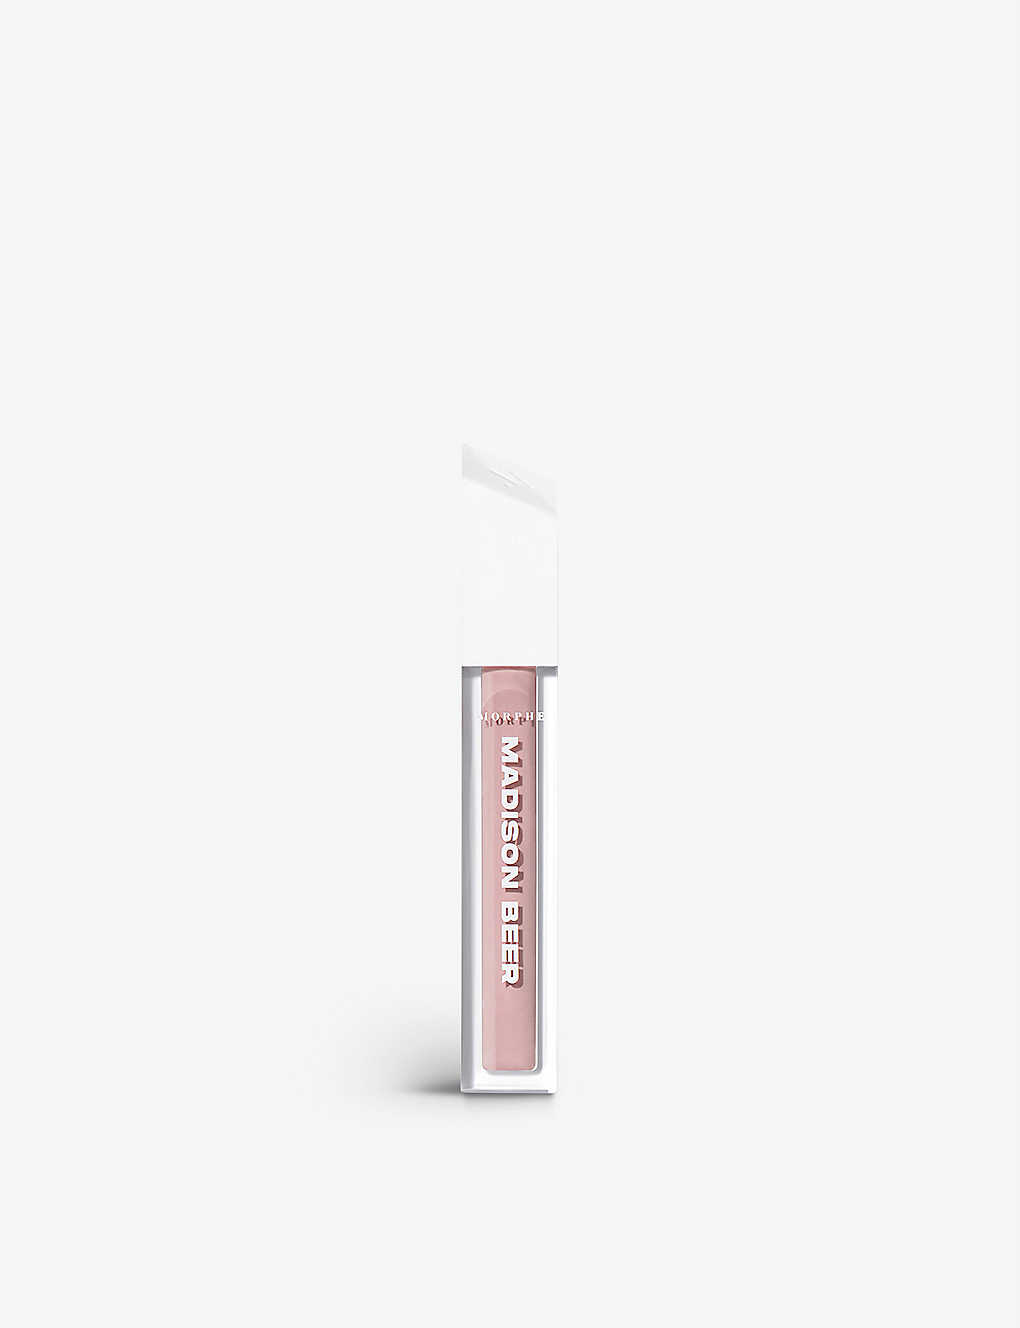 Morphe Morphe Madison Beer Channel Surfing Lip Gloss 4 5ml Selfridges Com Madisonbeer.lnk.to/baby follow madison beer with a full makeup tutorial using her new makeup collection for morphe, the james. selfridges